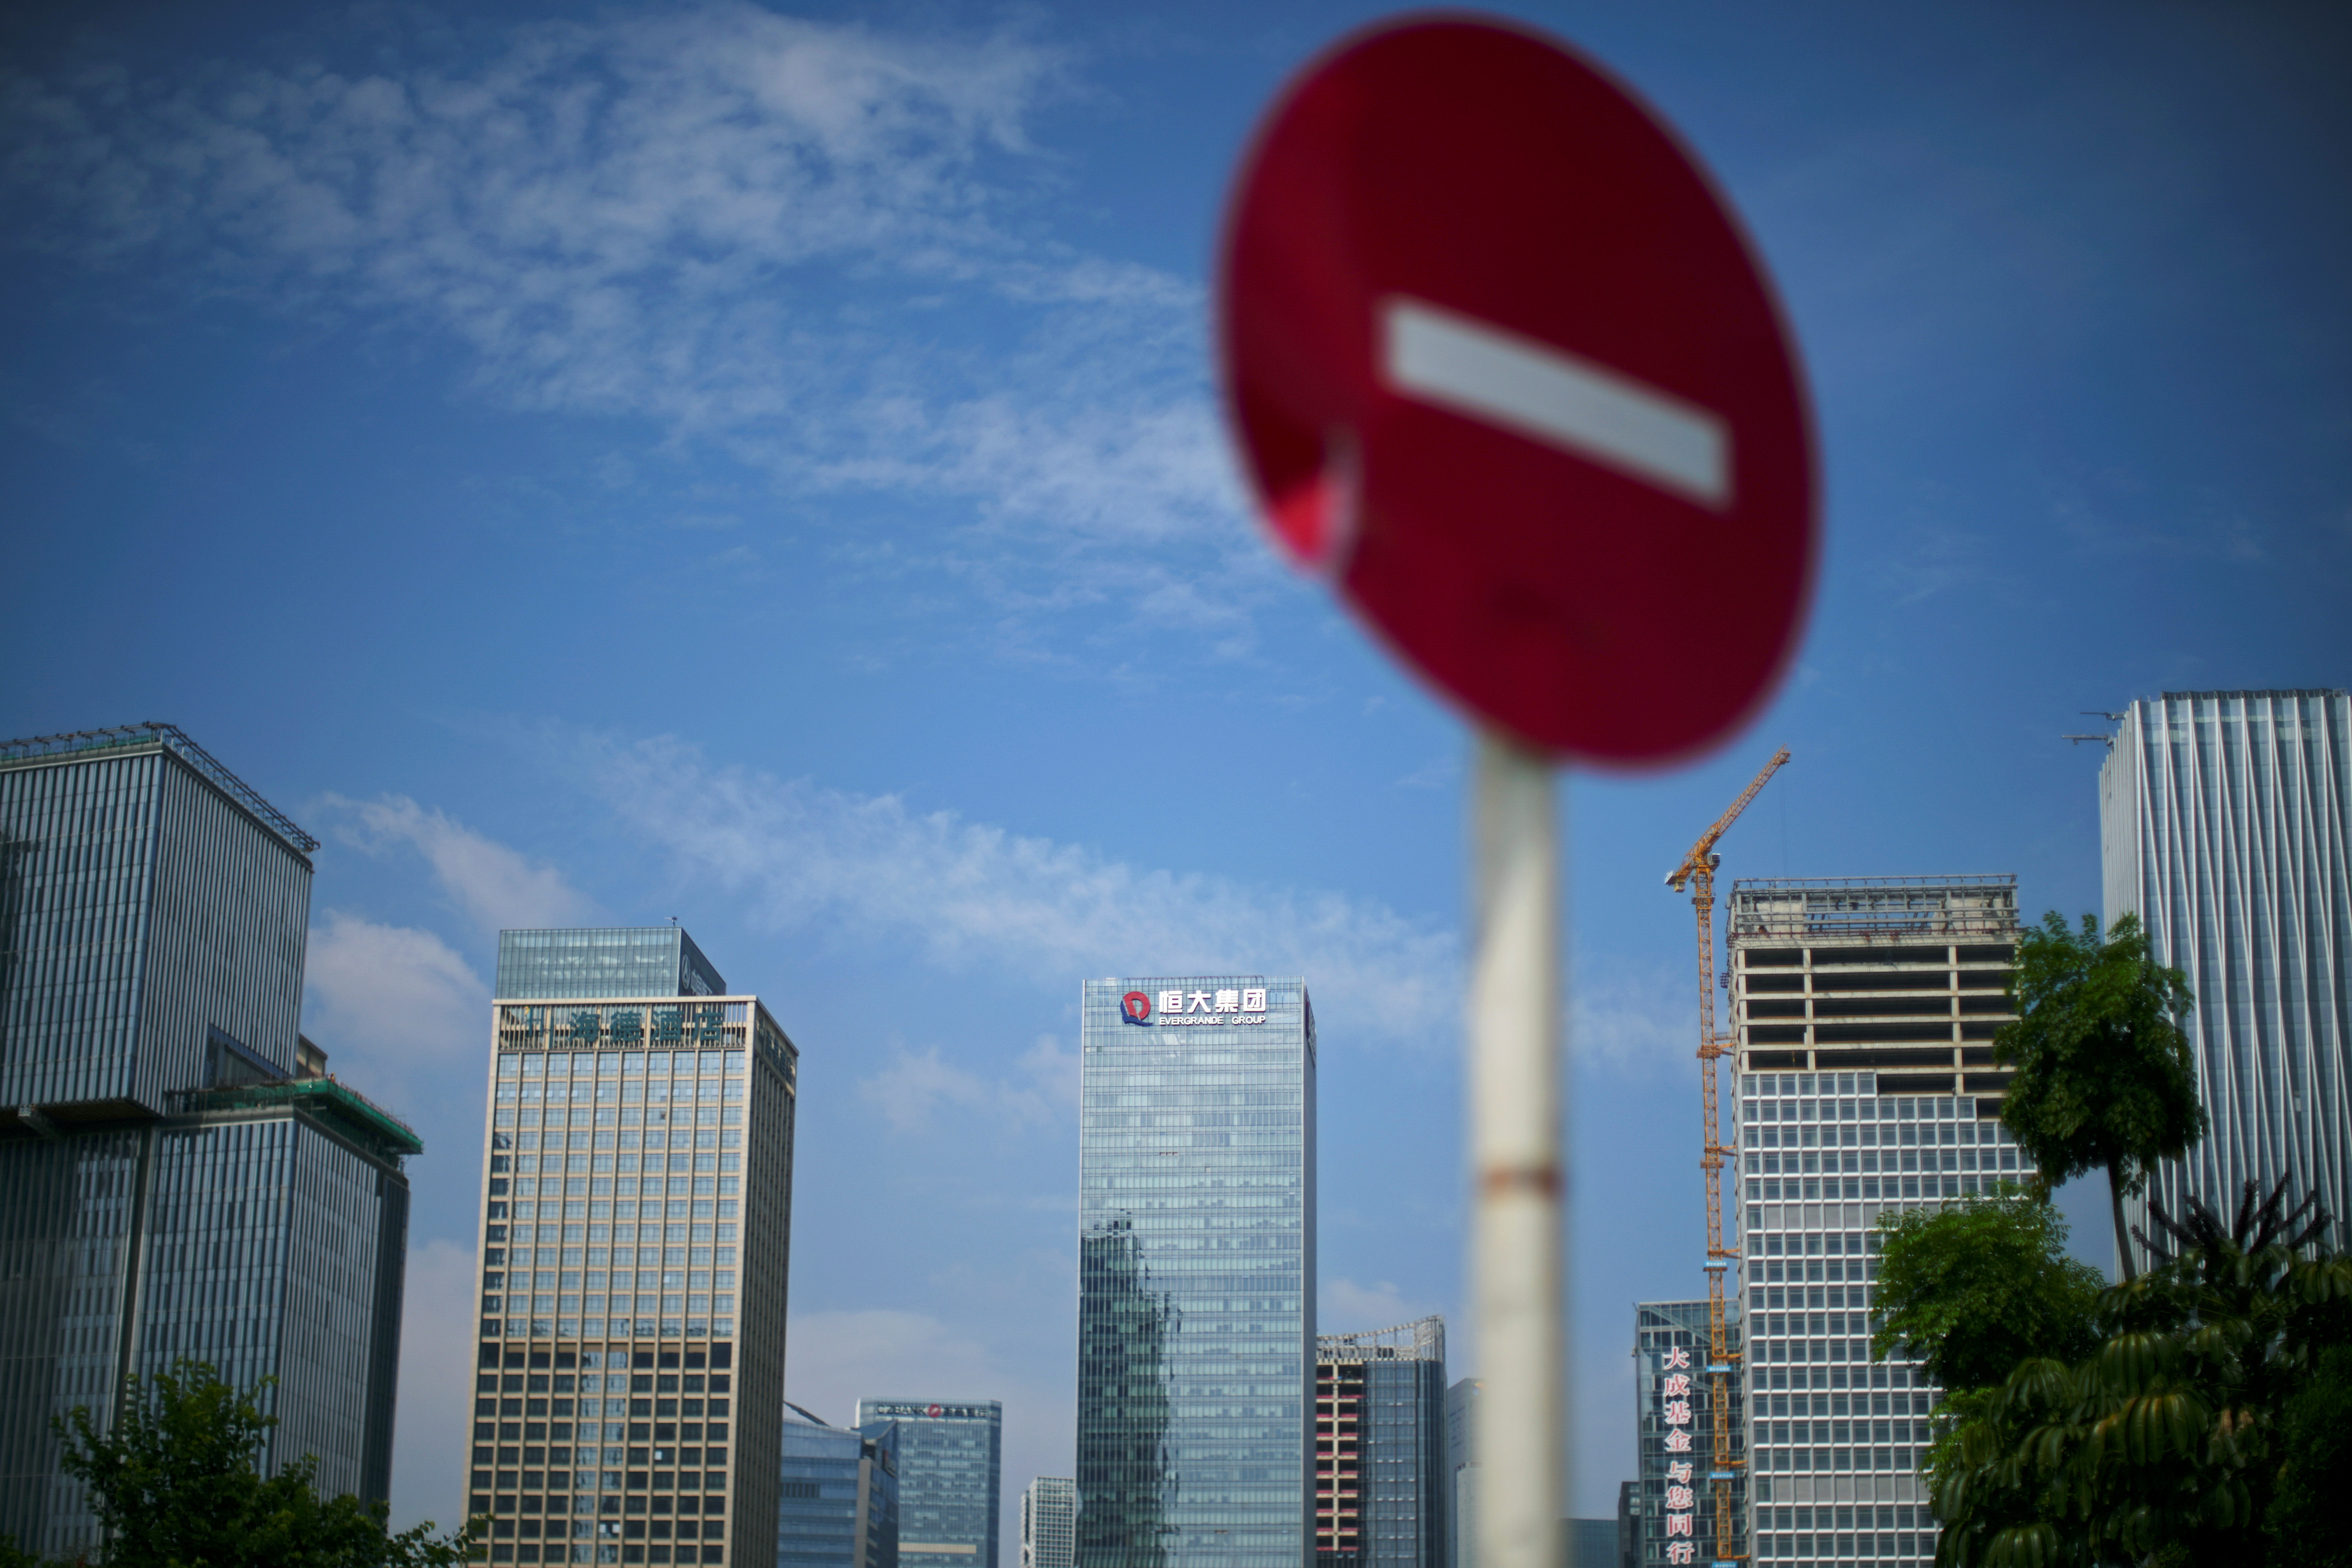 A No Entry traffic sign stands near the headquarters of China Evergrande Group in Shenzhen, Guangdong province, China September 26, 2021. REUTERS/Aly Song